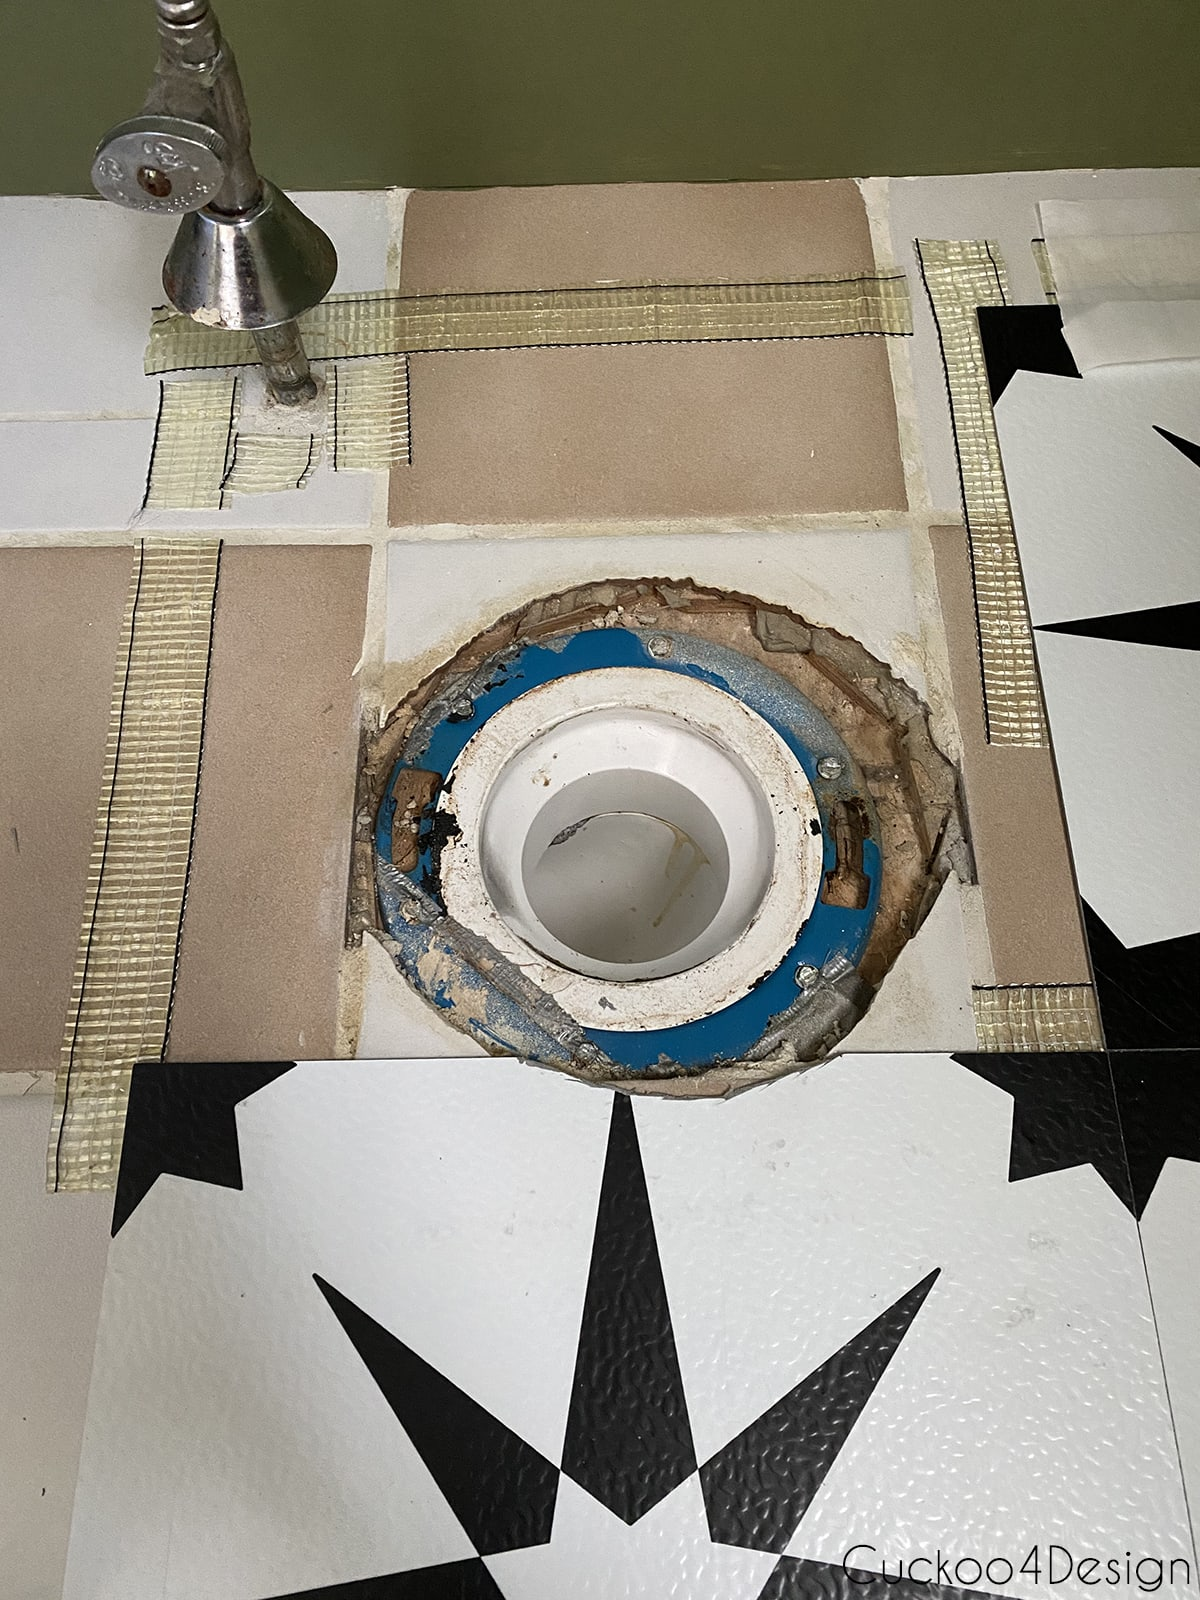 view of carpet tape around toilet before applying cheap peel and stick floor tile